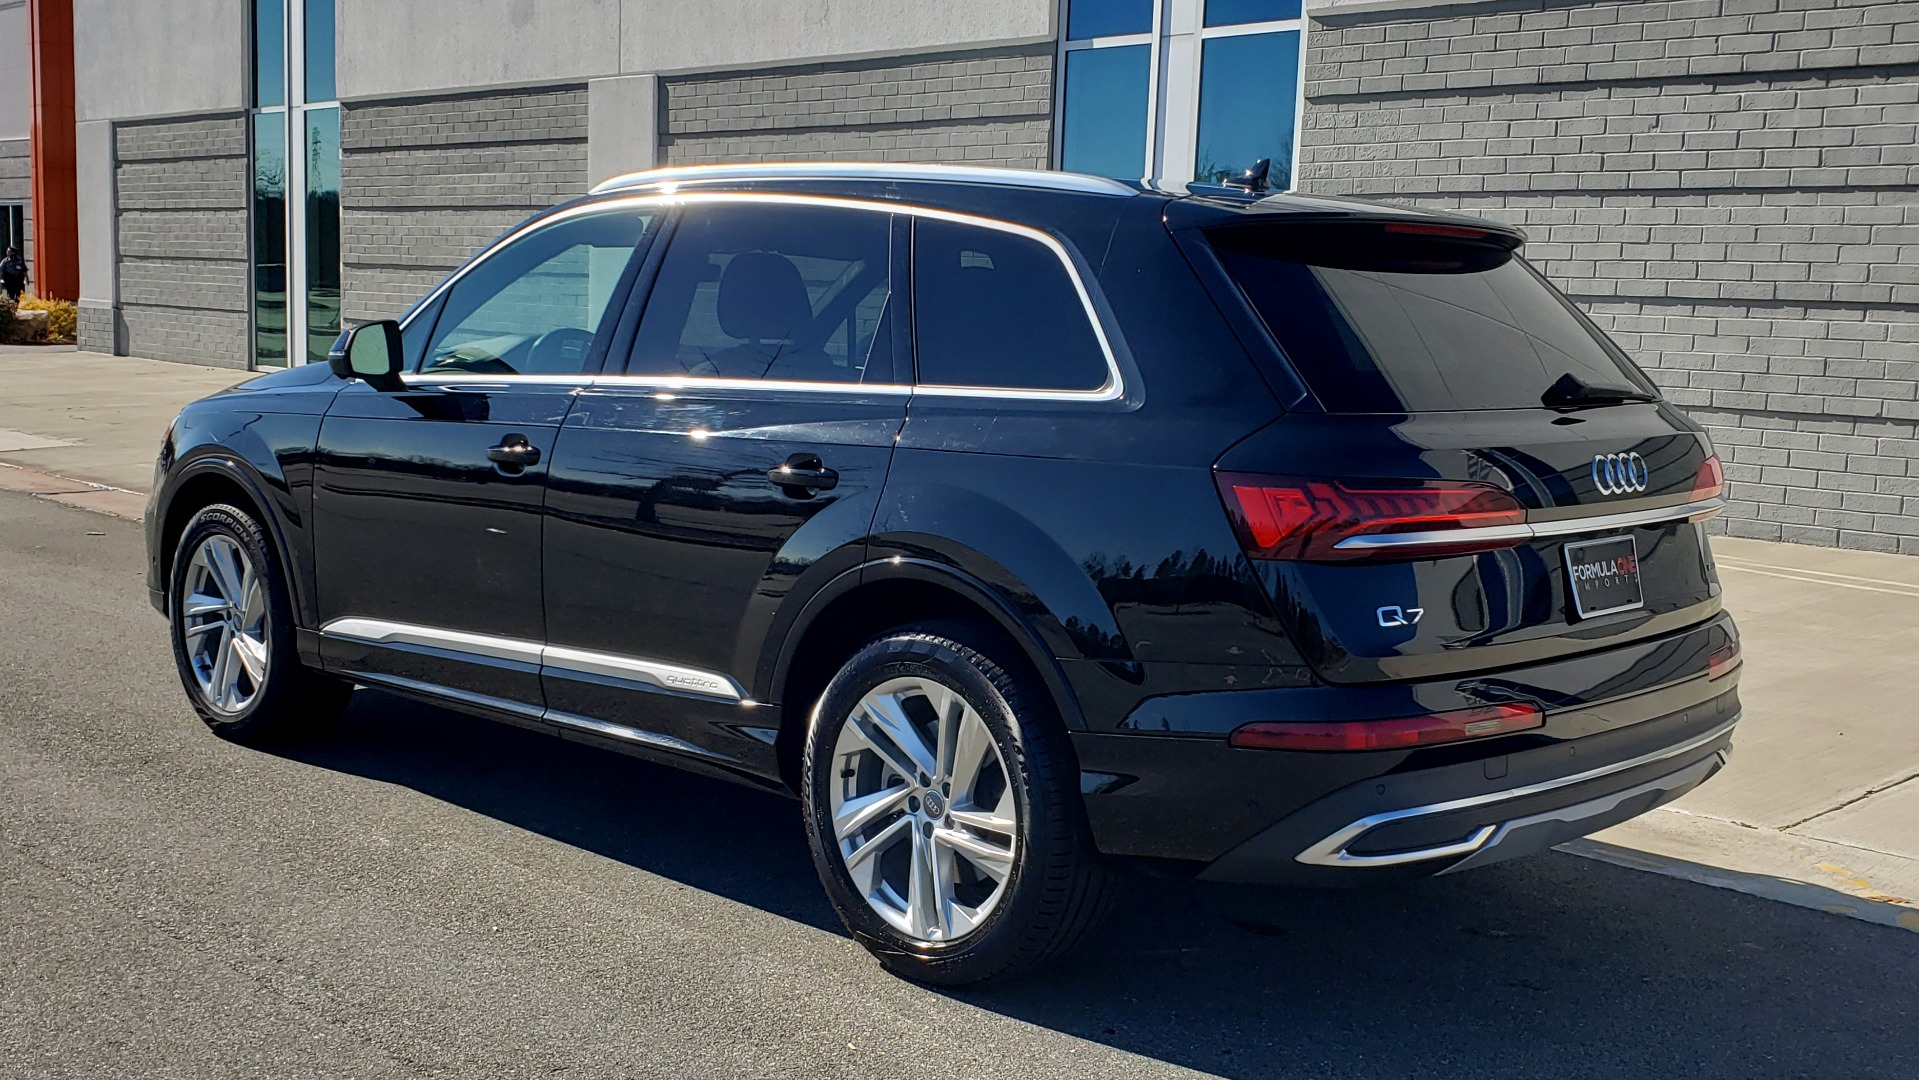 Used 2020 Audi Q7 PREMIUM PLUS / NAV / SUNROOF / 3-ROW / REARVIEW for sale $50,695 at Formula Imports in Charlotte NC 28227 5